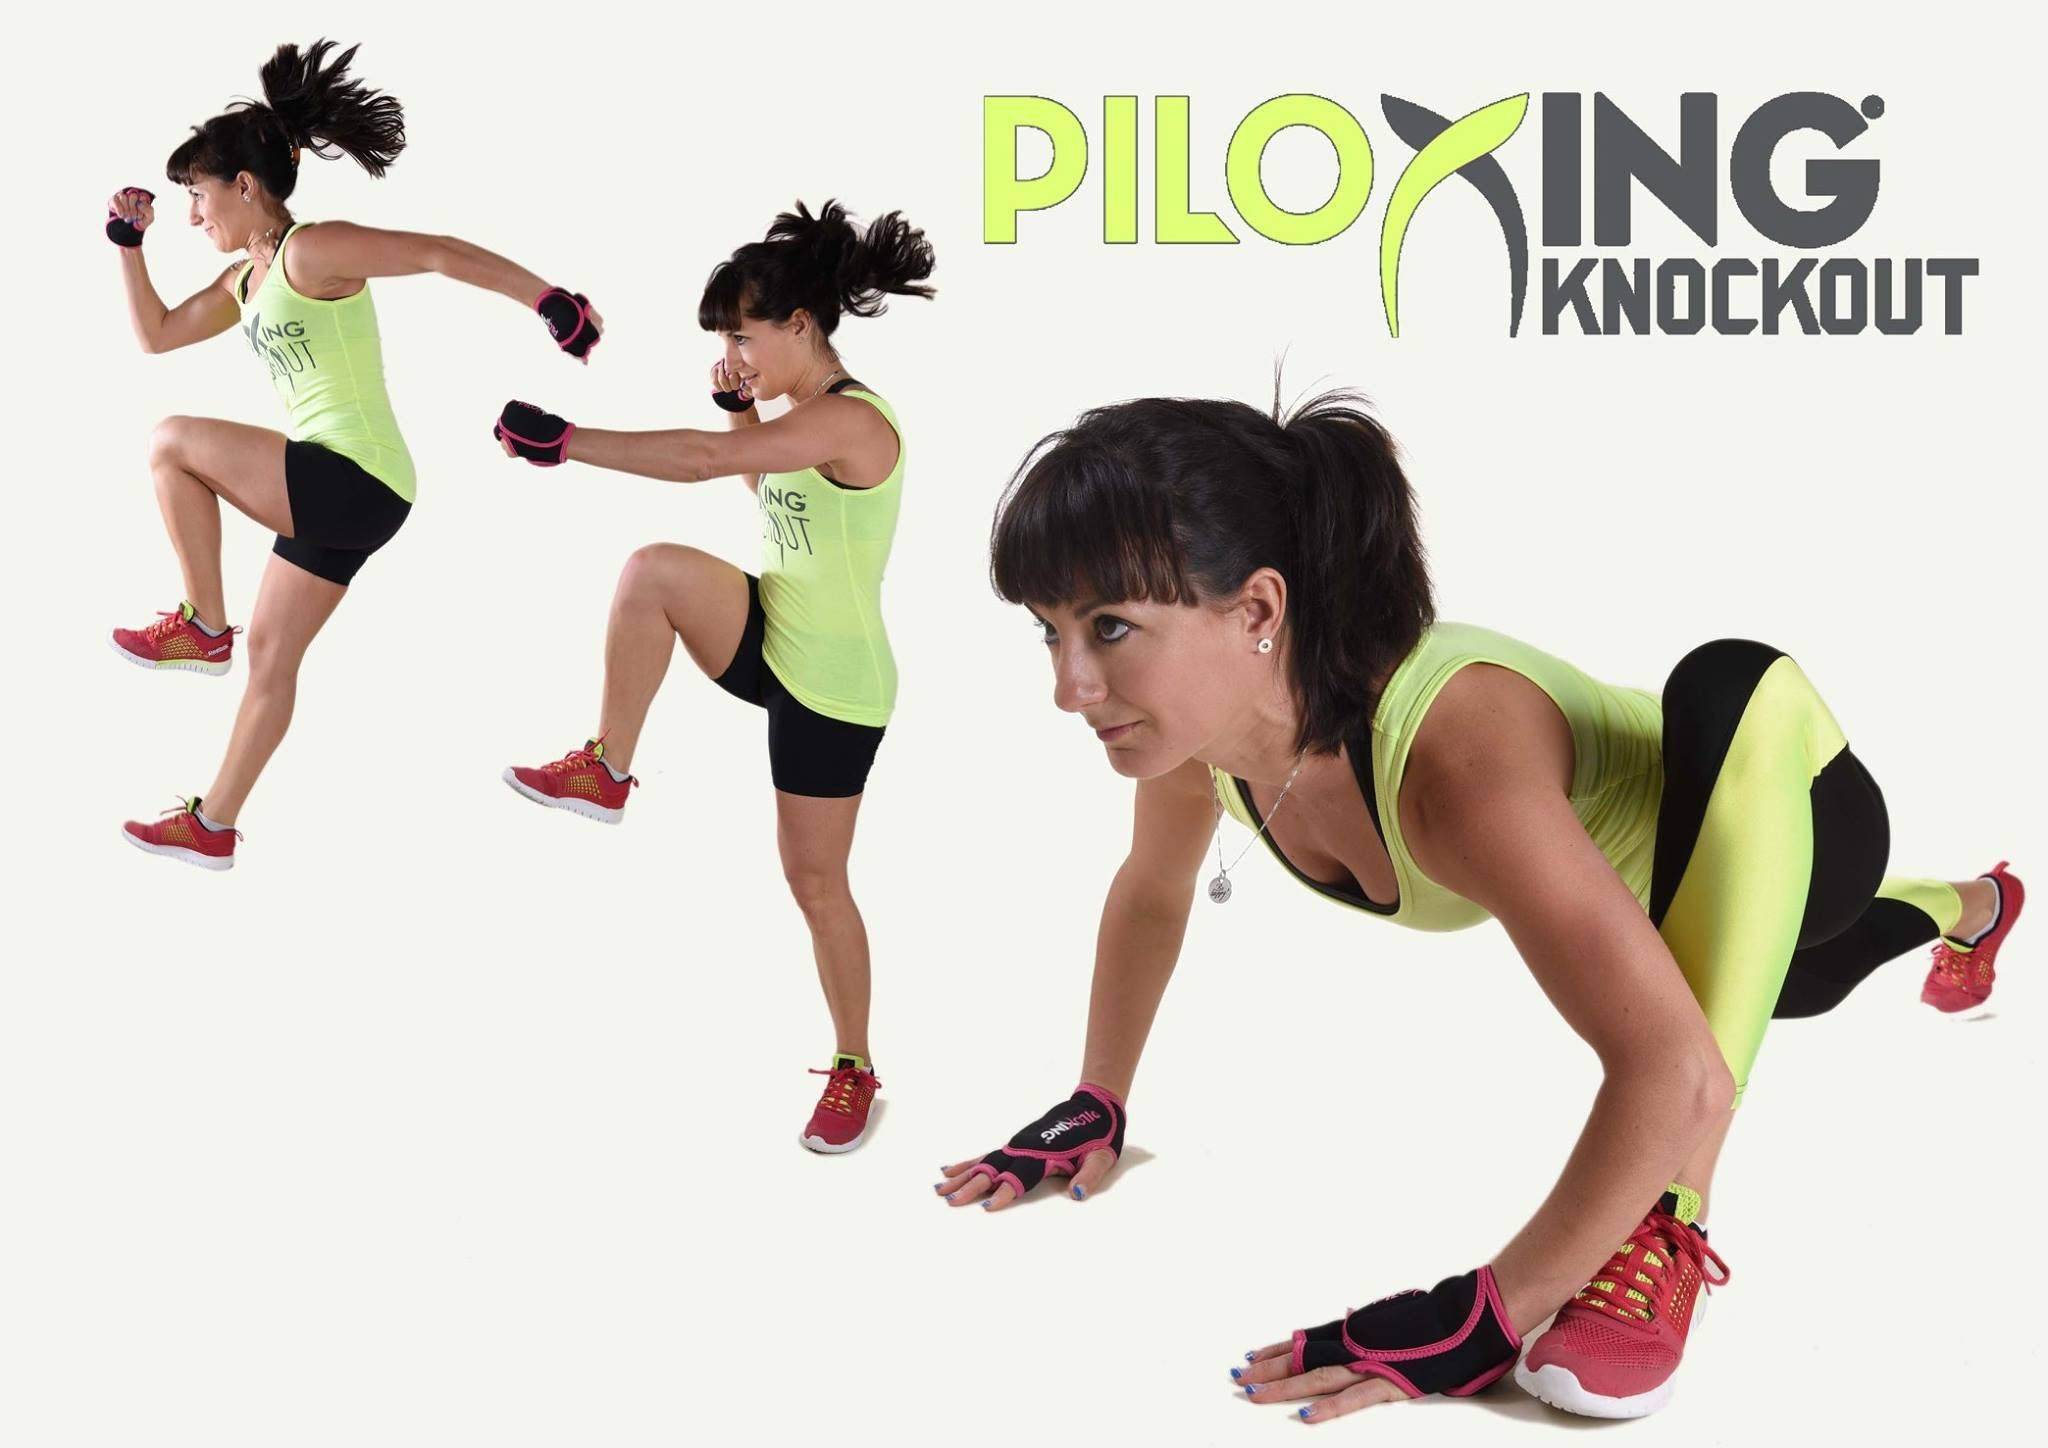 Piloxing knockout piloxing pinterest plyometrics cardio piloxing knockout 1betcityfo Images